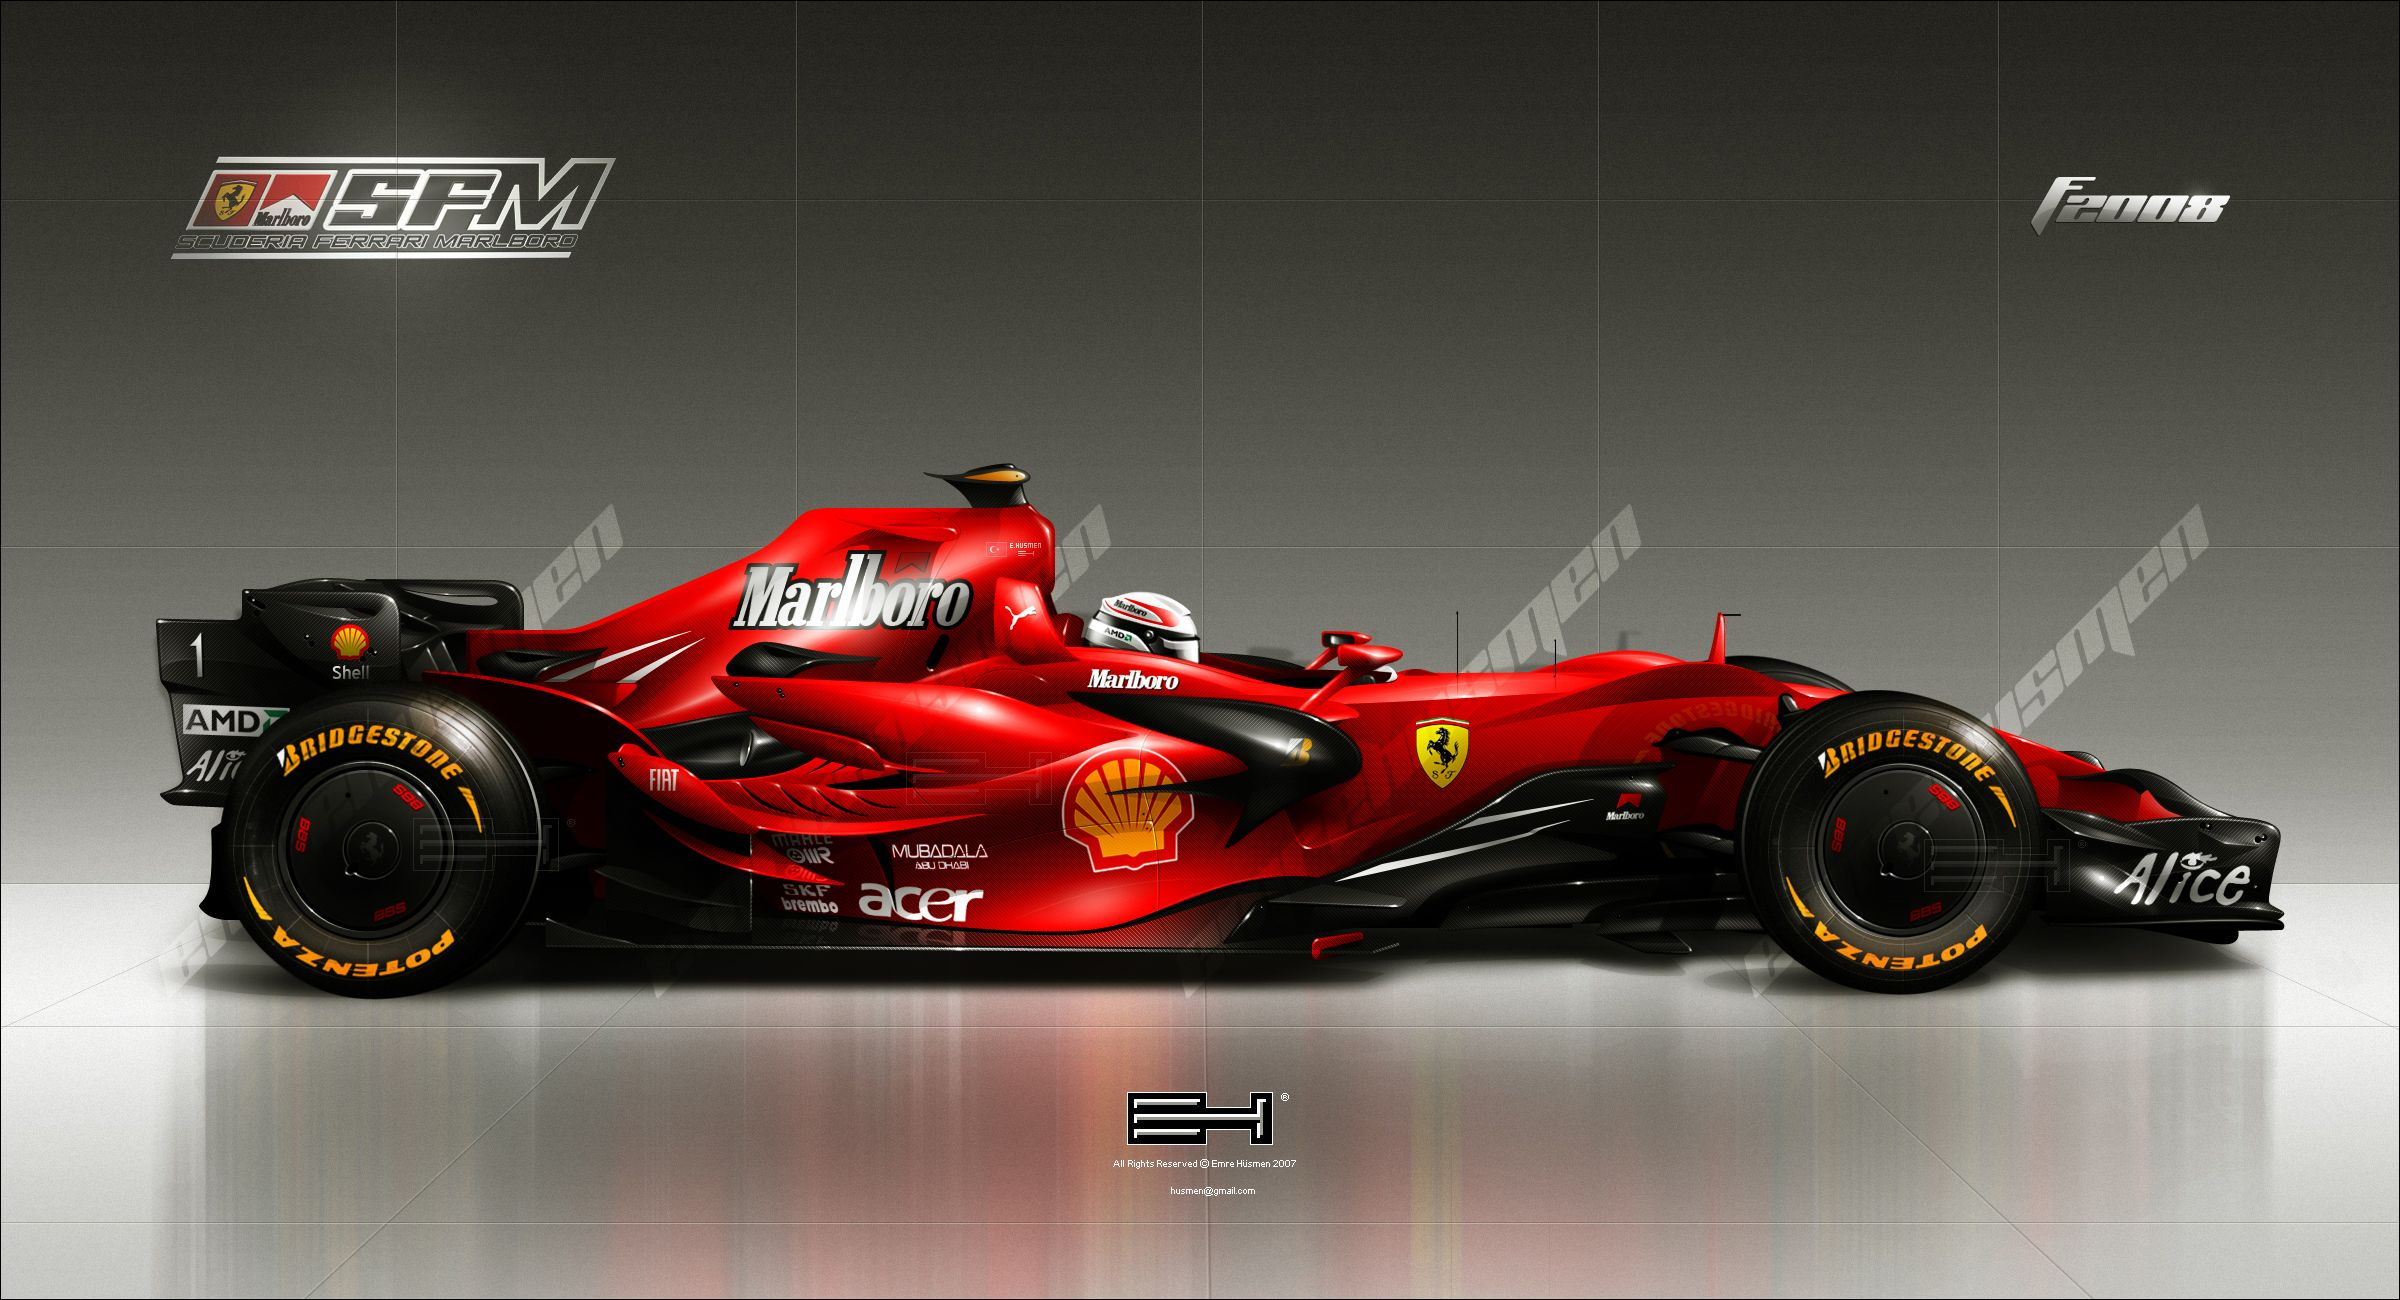 2015 Ferrari F1 Car Super Cars Formel 1 Grand Prix Rennen